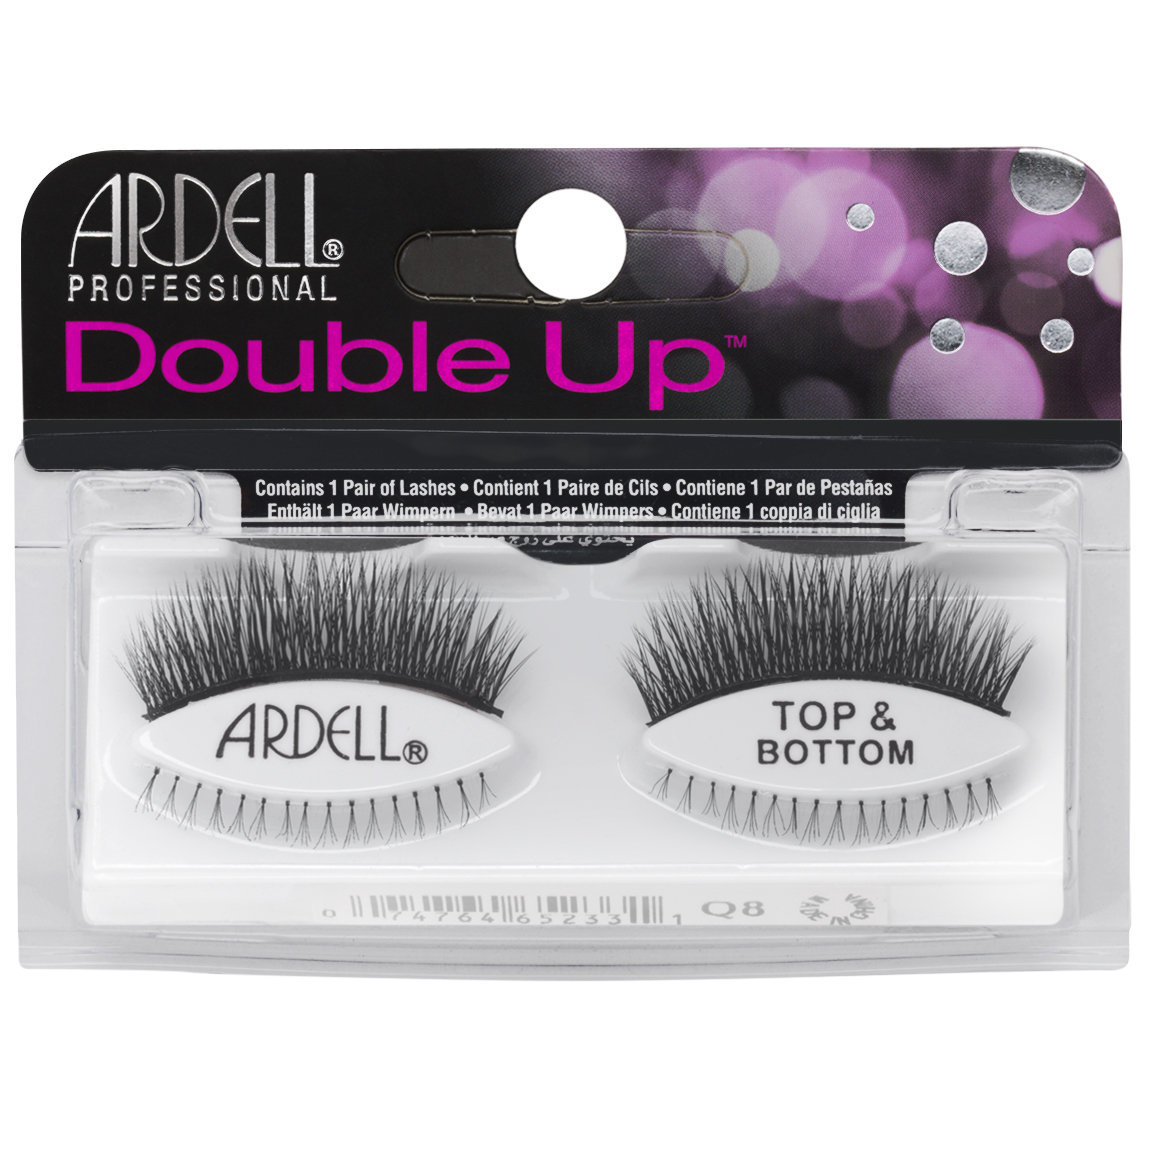 Ardell Double Up Lashes 209 Top & Bottom